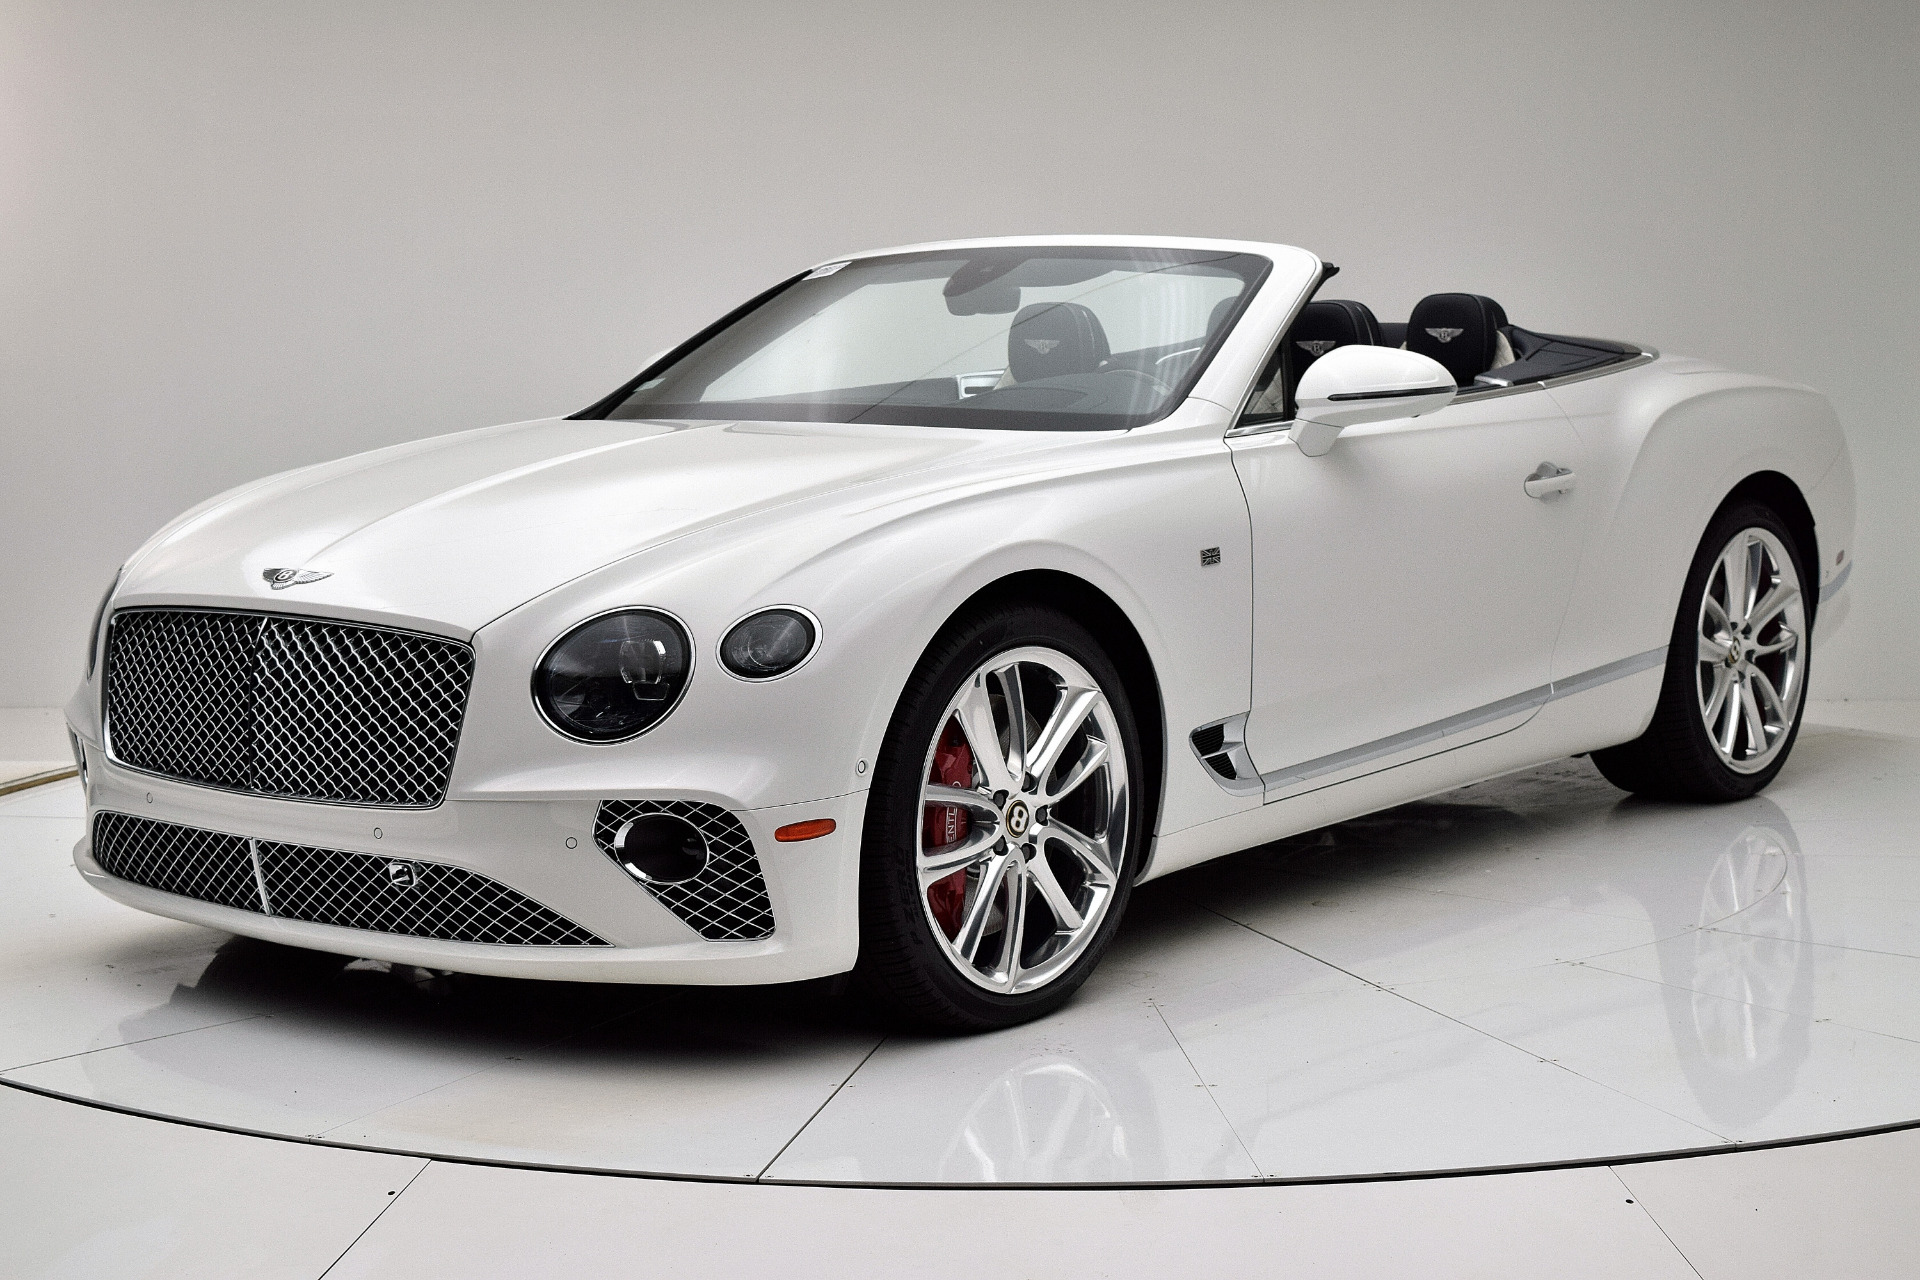 New 2020 Bentley Continental Gt V8 Convertible First Edition For Sale 278 355 Bentley Palmyra N J Stock 20be112